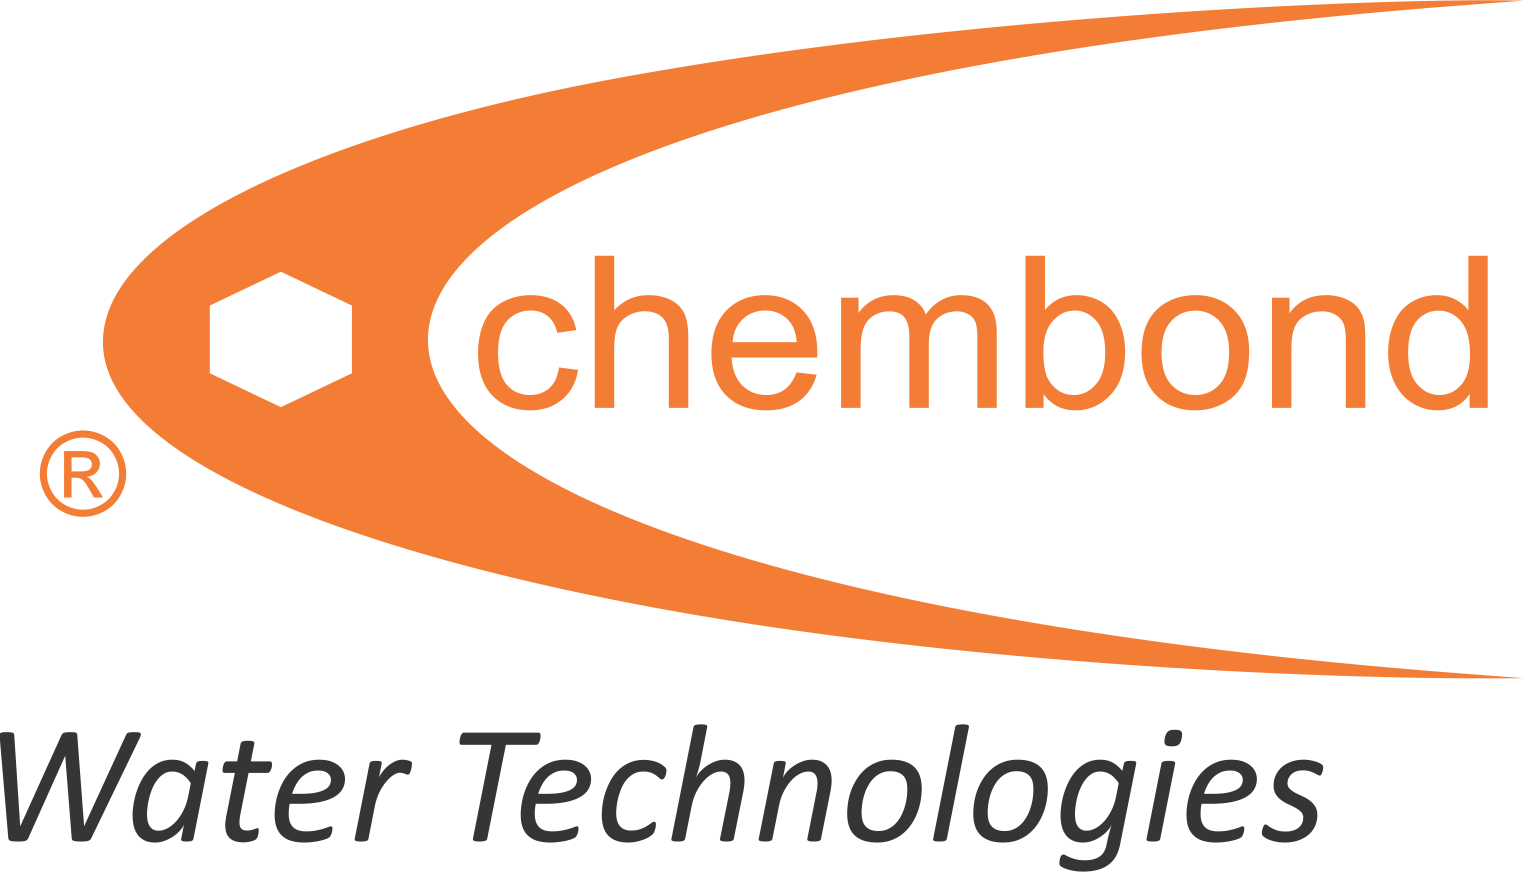 Chembond Water Technologies Limited